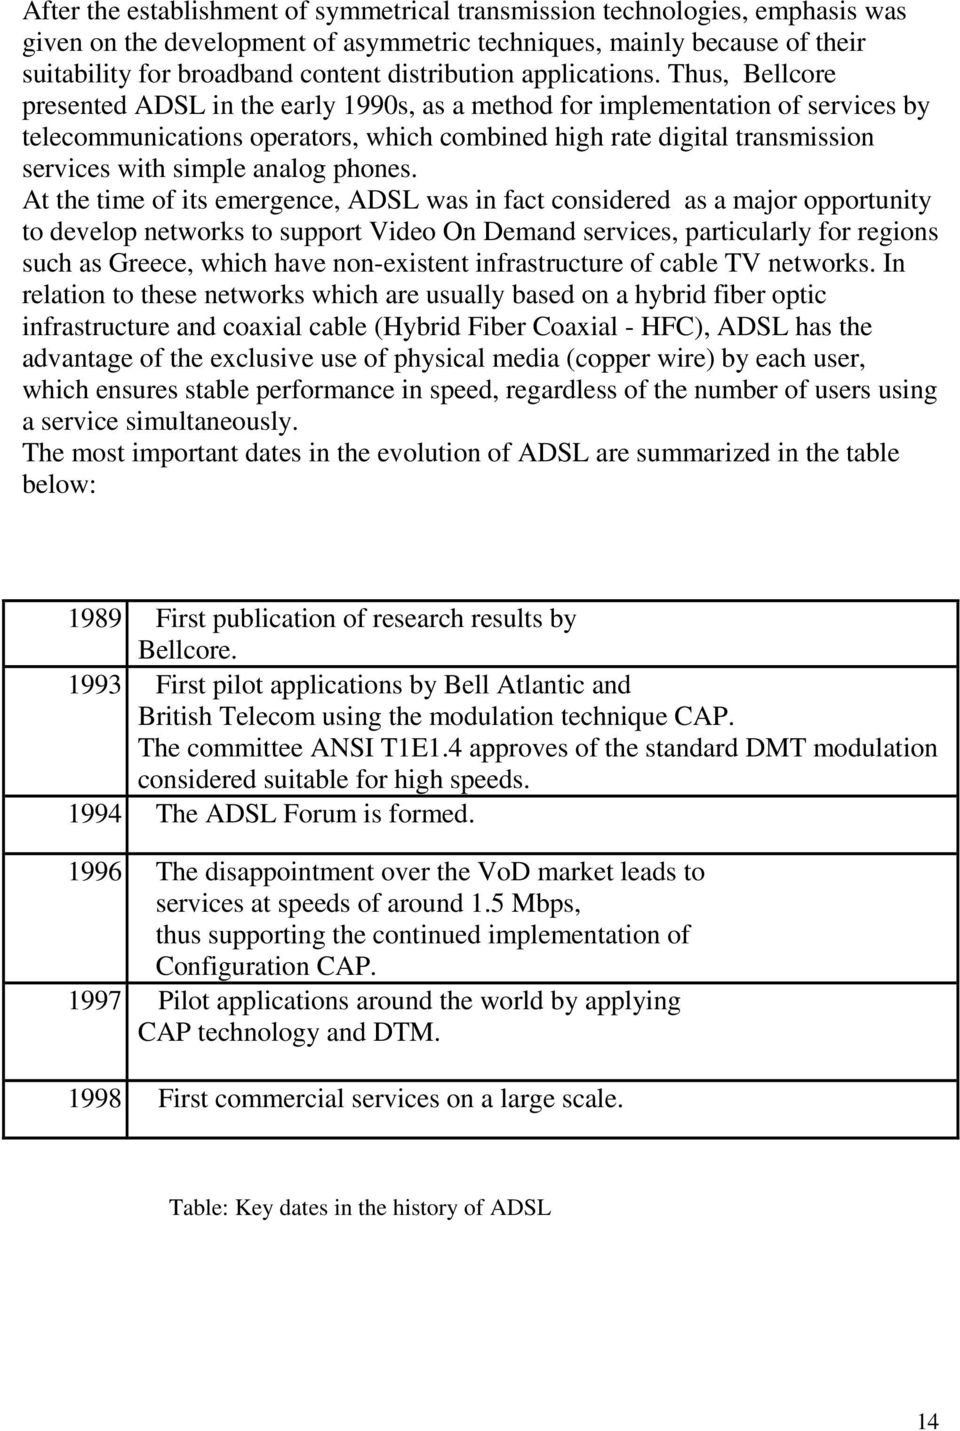 Thus, Bellcore presented ADSL in the early 1990s, as a method for implementation of services by telecommunications operators, which combined high rate digital transmission services with simple analog